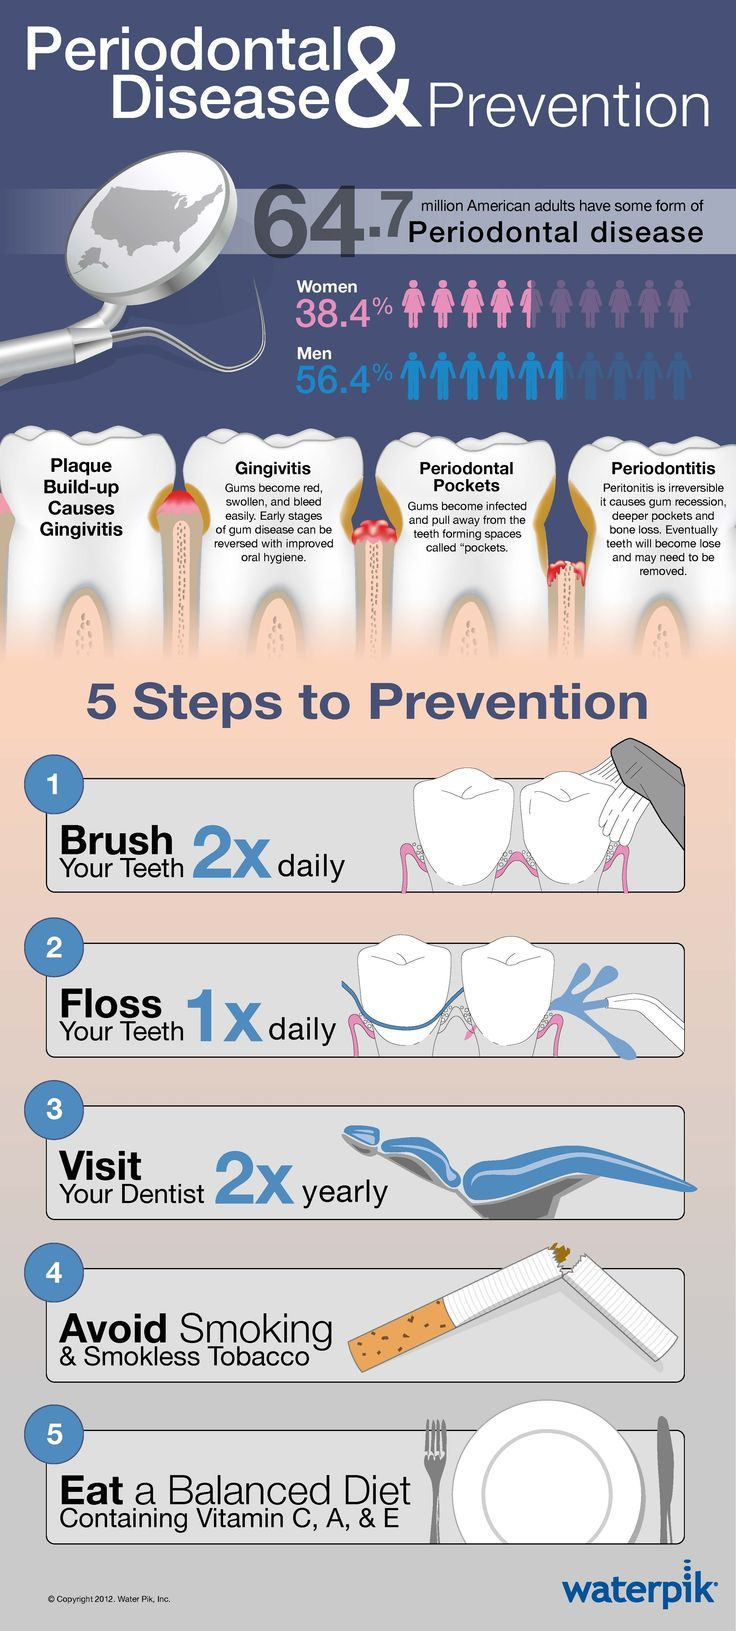 Discover 378 #OralHealth tips for the ultimate healthy mouth at http://naturaldailypost.com/?cat=22